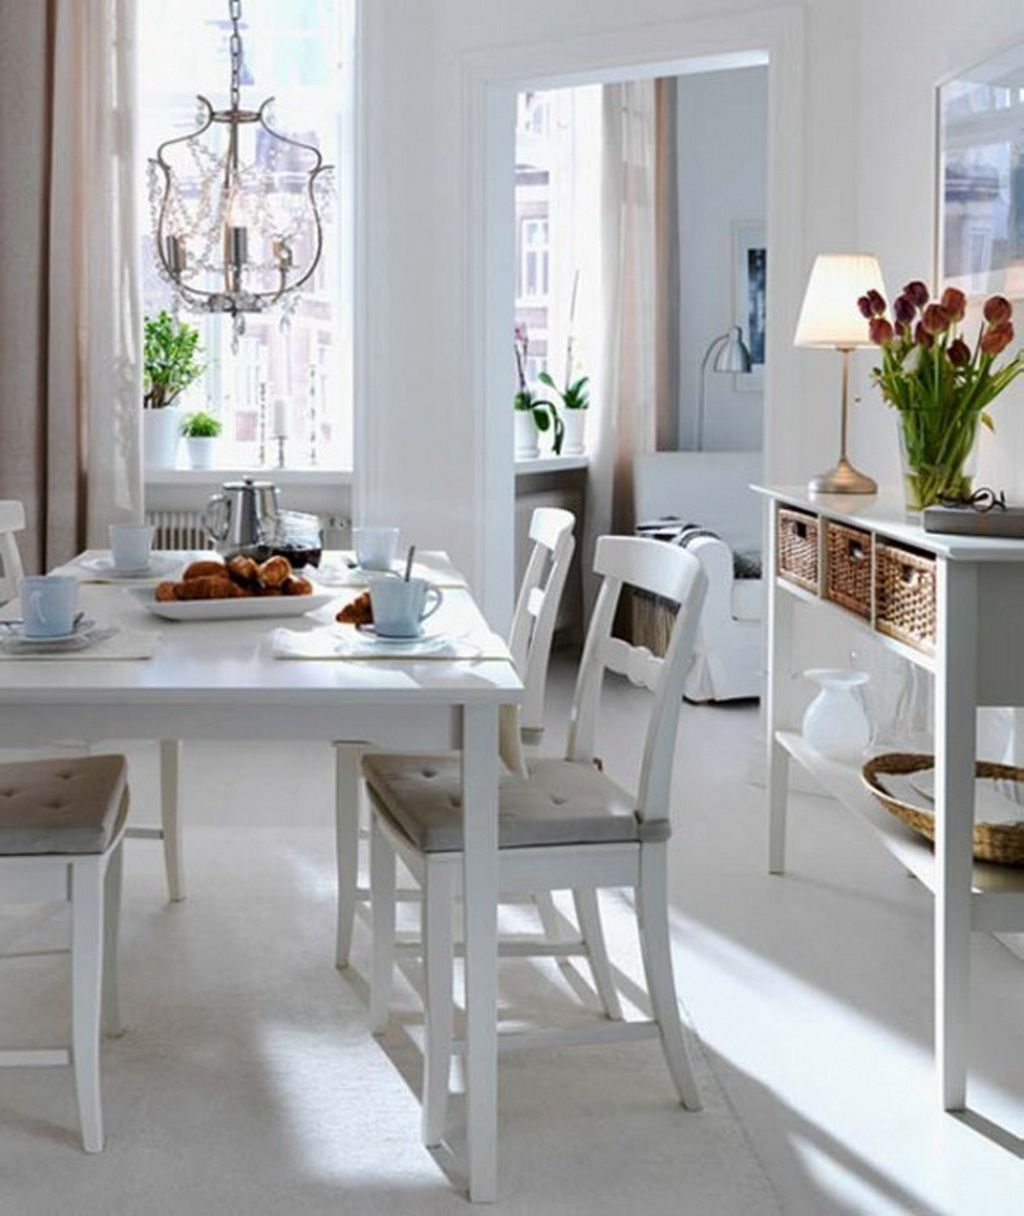 Ikea Ideas And Inspiration Best of Living